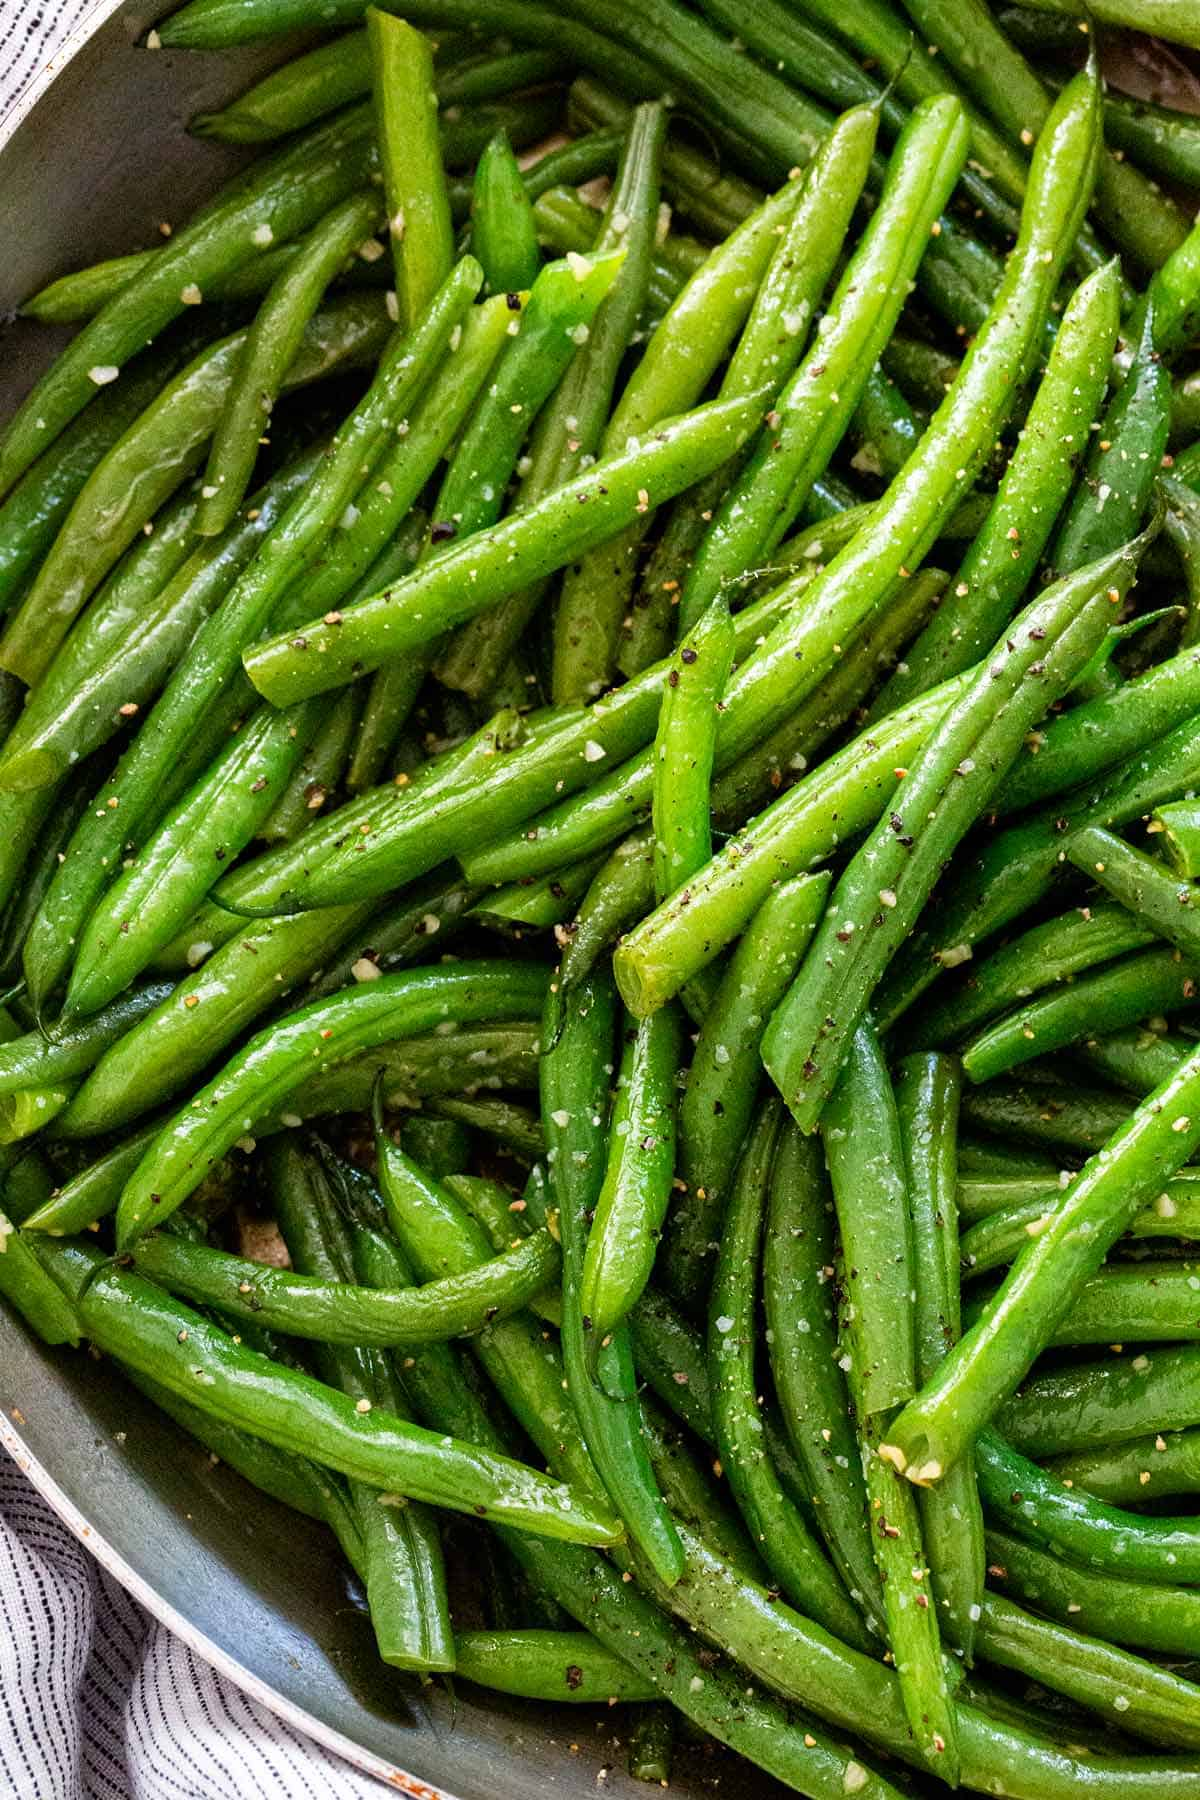 Sautéed greens beans are a healthy side dish. To make this an easy one-pan recipe, saute garlic and beans first and then steam until crisp-tender. #greenbeans #sidedish #healthyrecipe